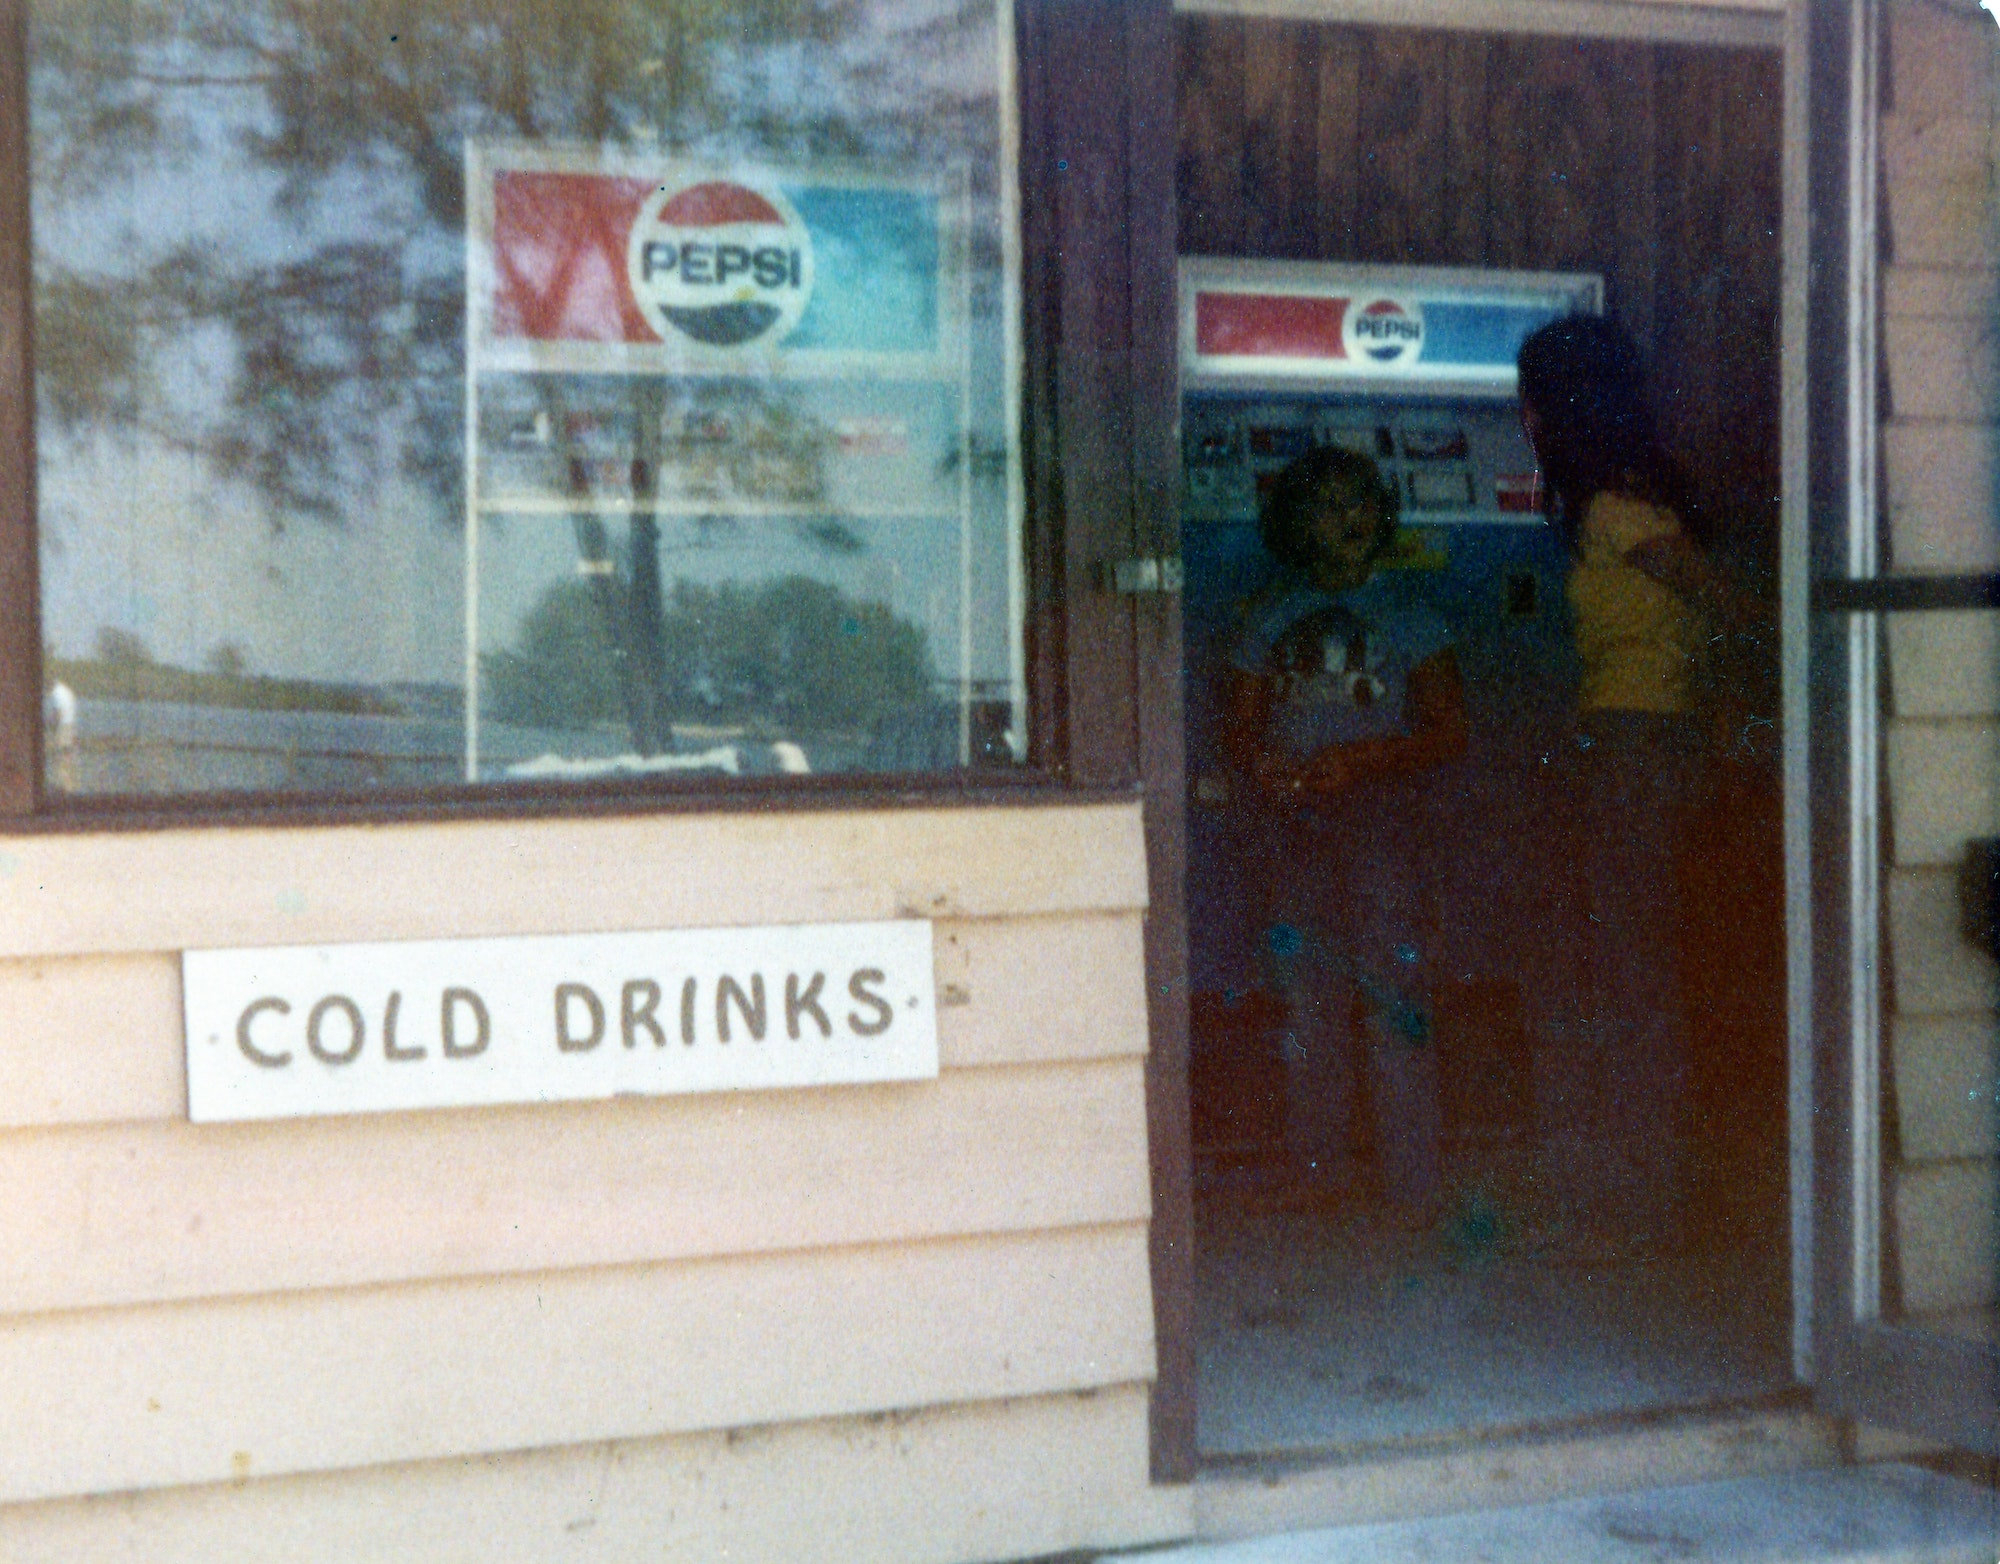 cold drinks signs showing soda vending machines in building at state park